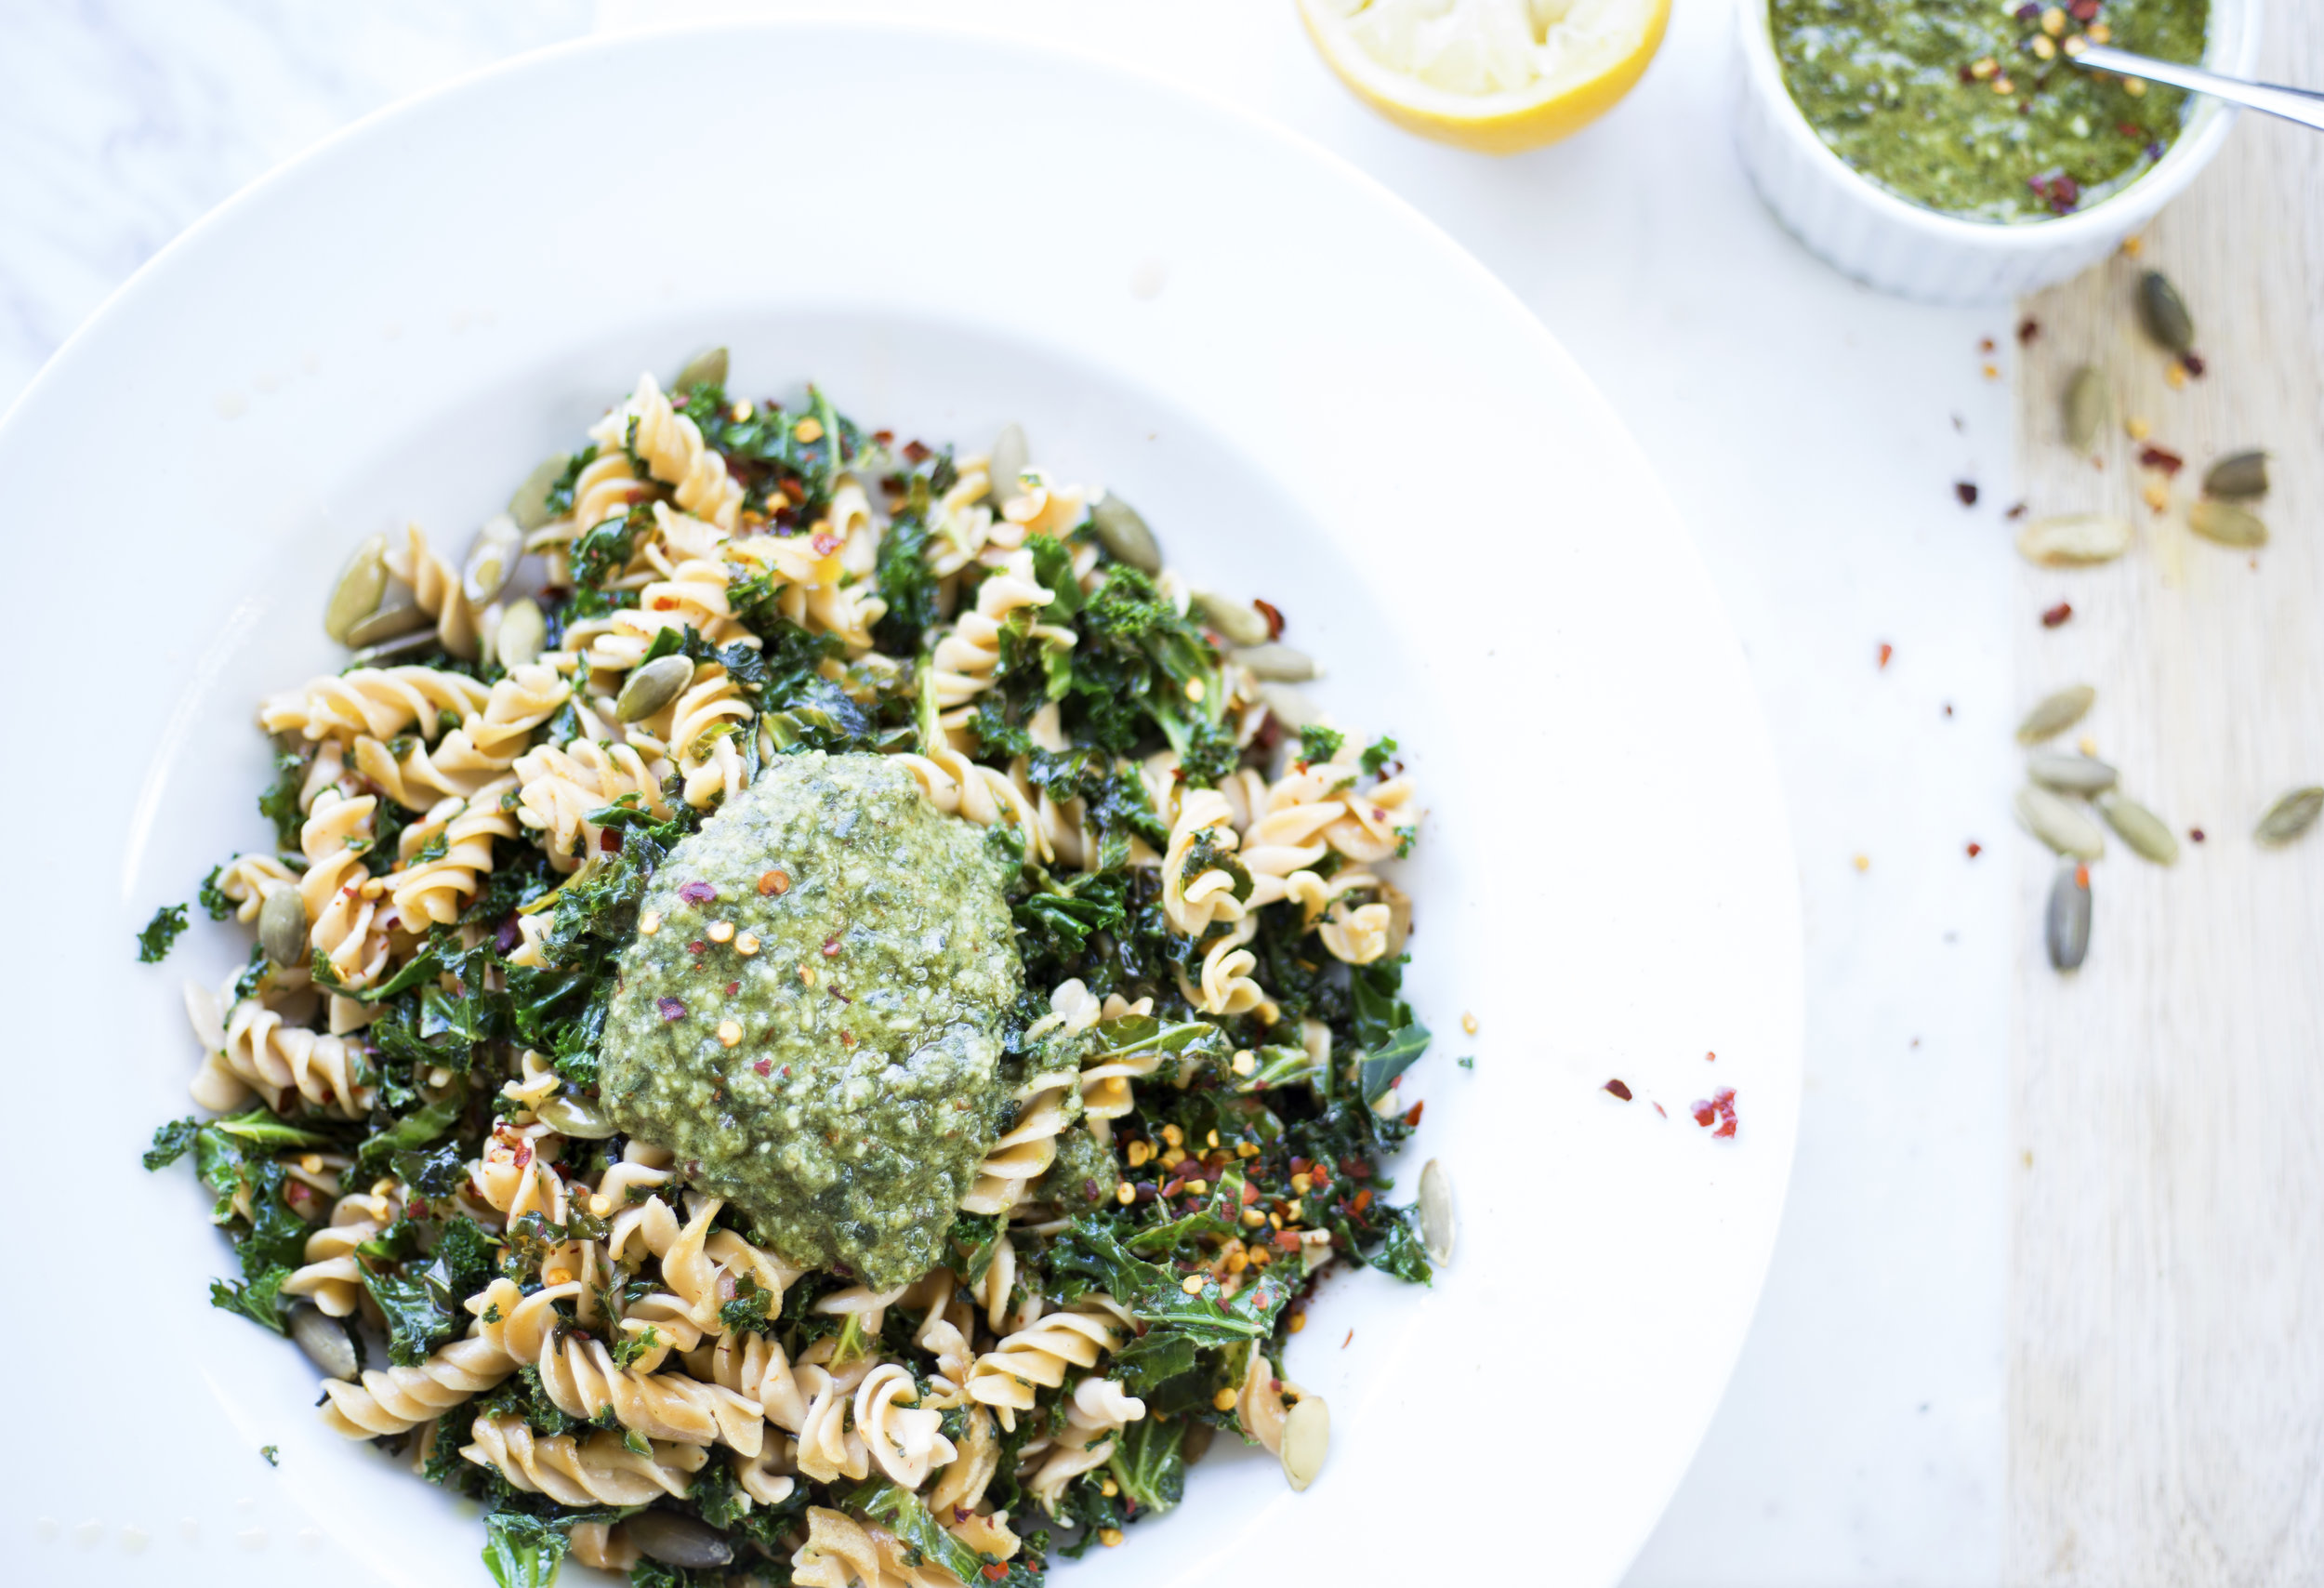 Lentil Pasta with fresh basil-pepita pesto for an easy, gluten free family friendly weekday meal